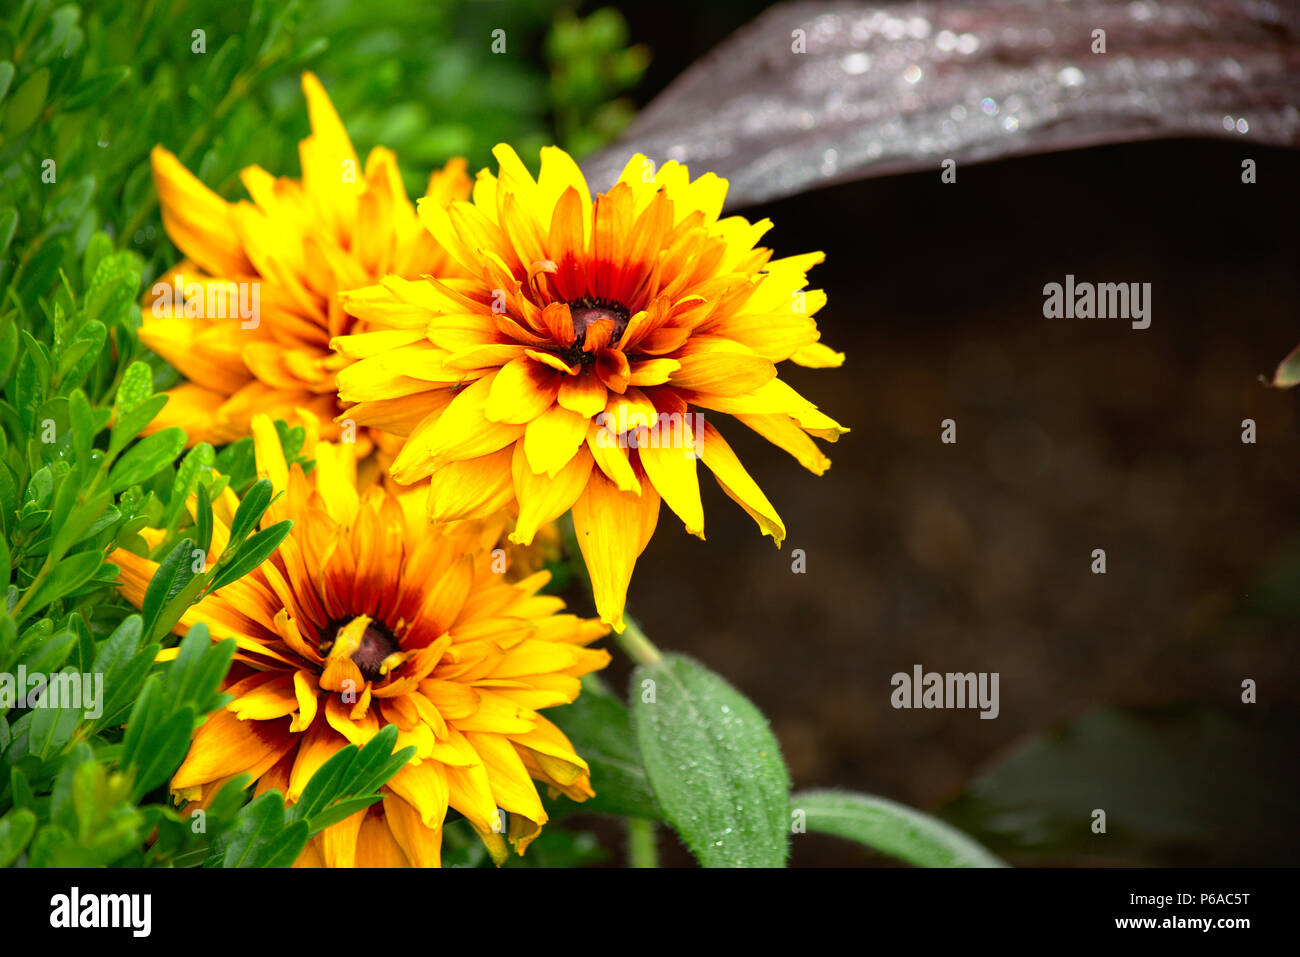 Yellow Flower With Red Center Stock Photo 210441444 Alamy